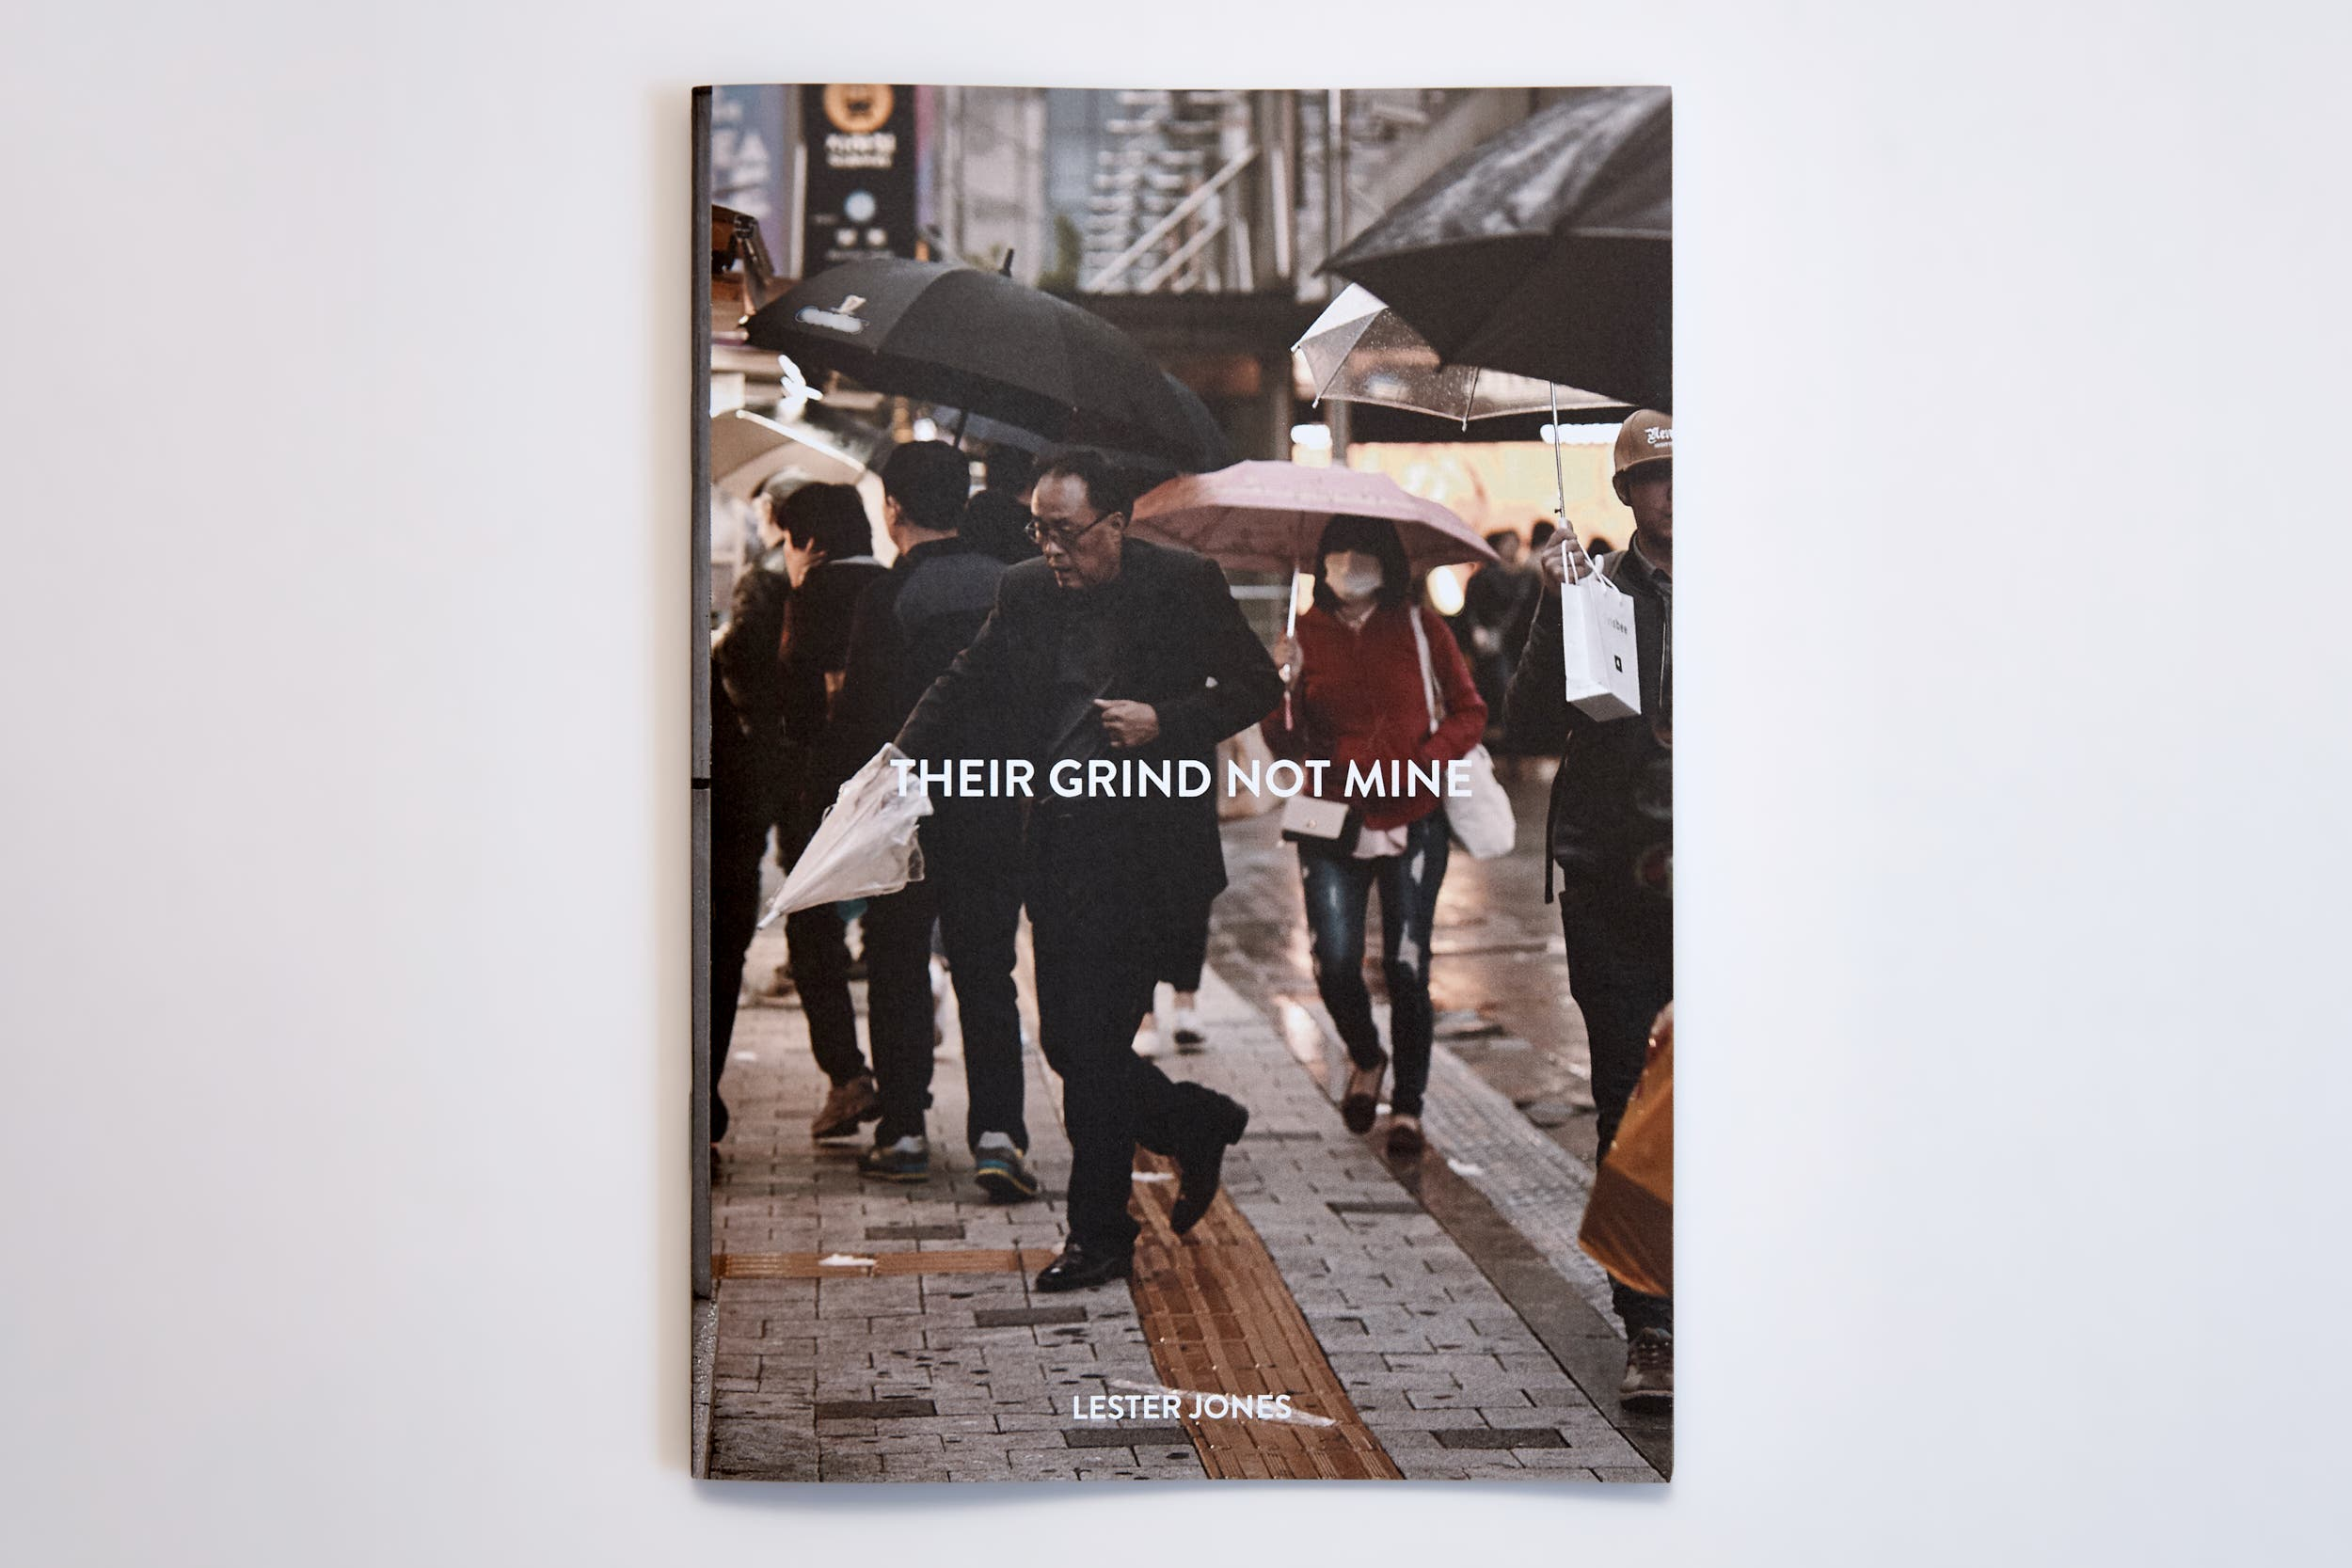 'Their Grind Not Mine' Is a Zine That Explores the Human Form